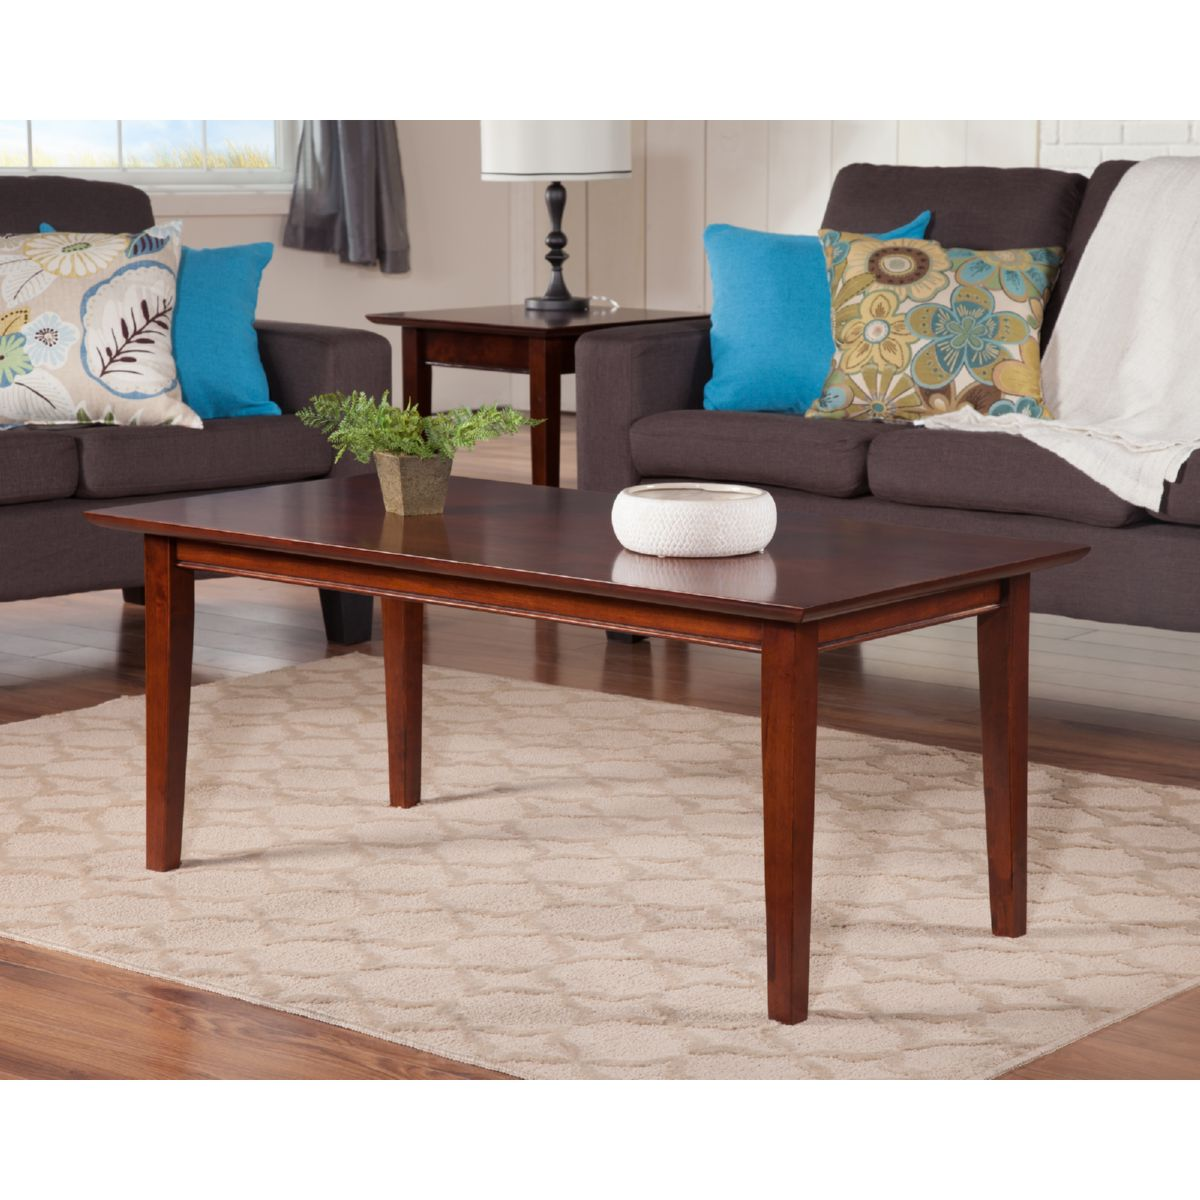 Atlantic furniture ah15104 shaker coffee table in walnut atlantic furniture shaker coffee table in walnut geotapseo Images